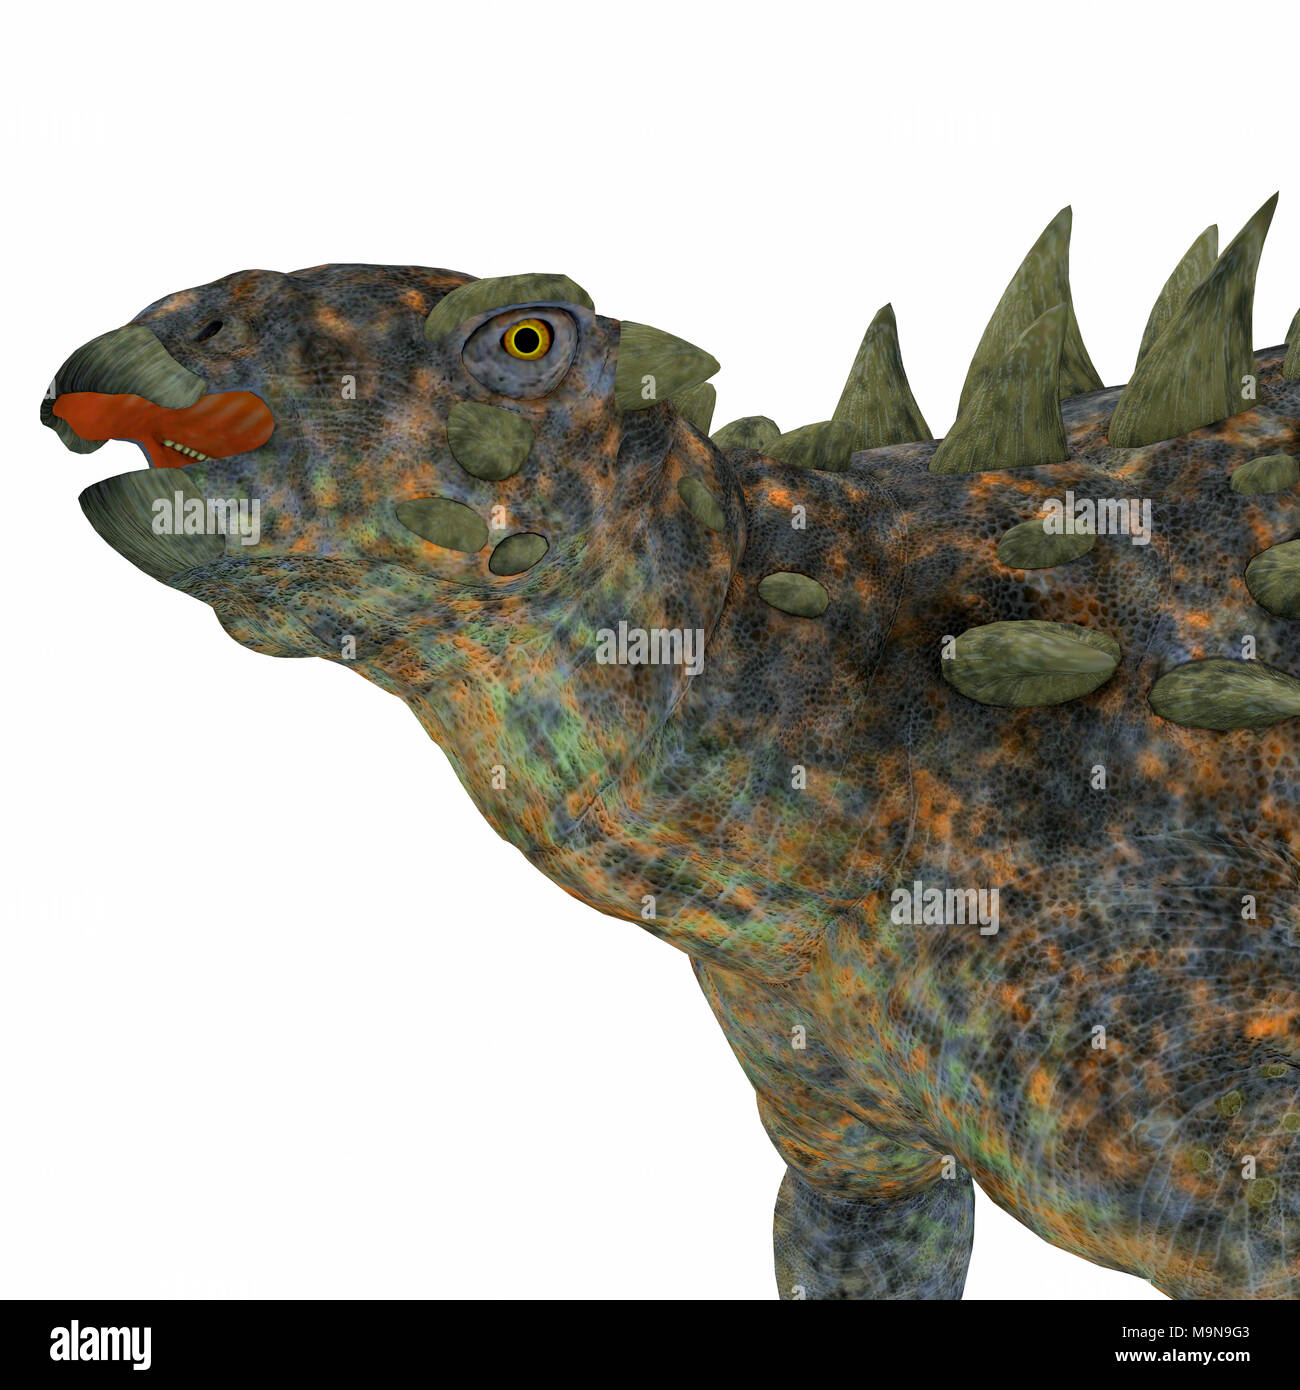 Polacanthus Dinosaur Head - Polacanthus was an armored herbivorous dinosaur that lived in Europe during the Cretaceous Period. - Stock Image